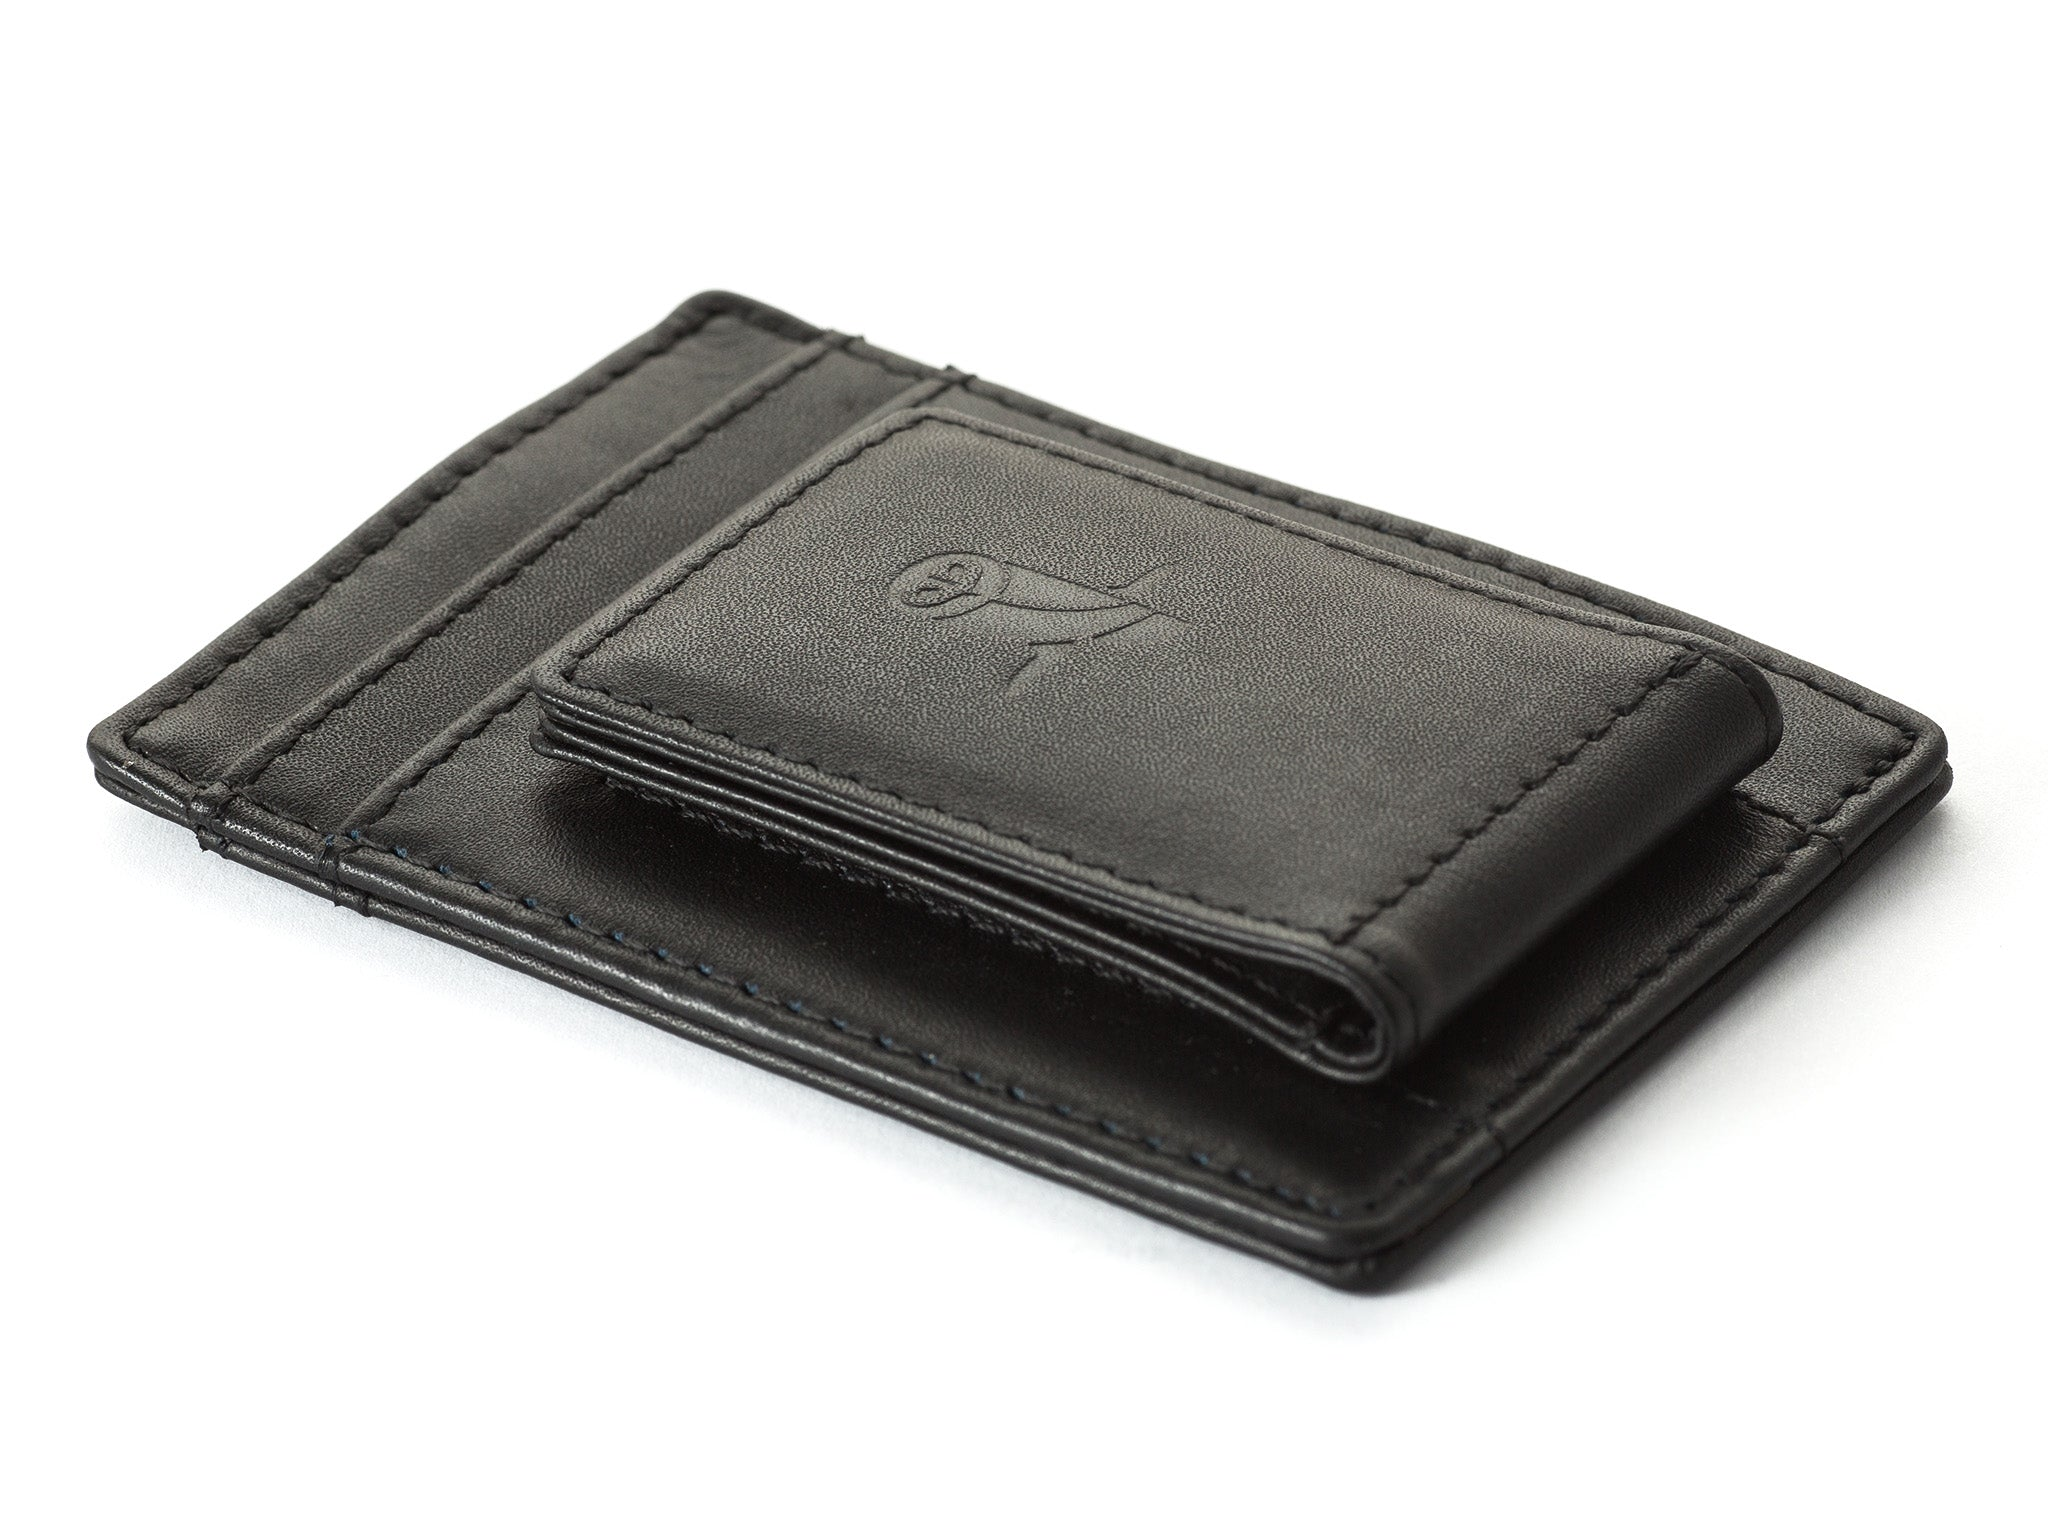 'Fossil' Wallet & Card Holder